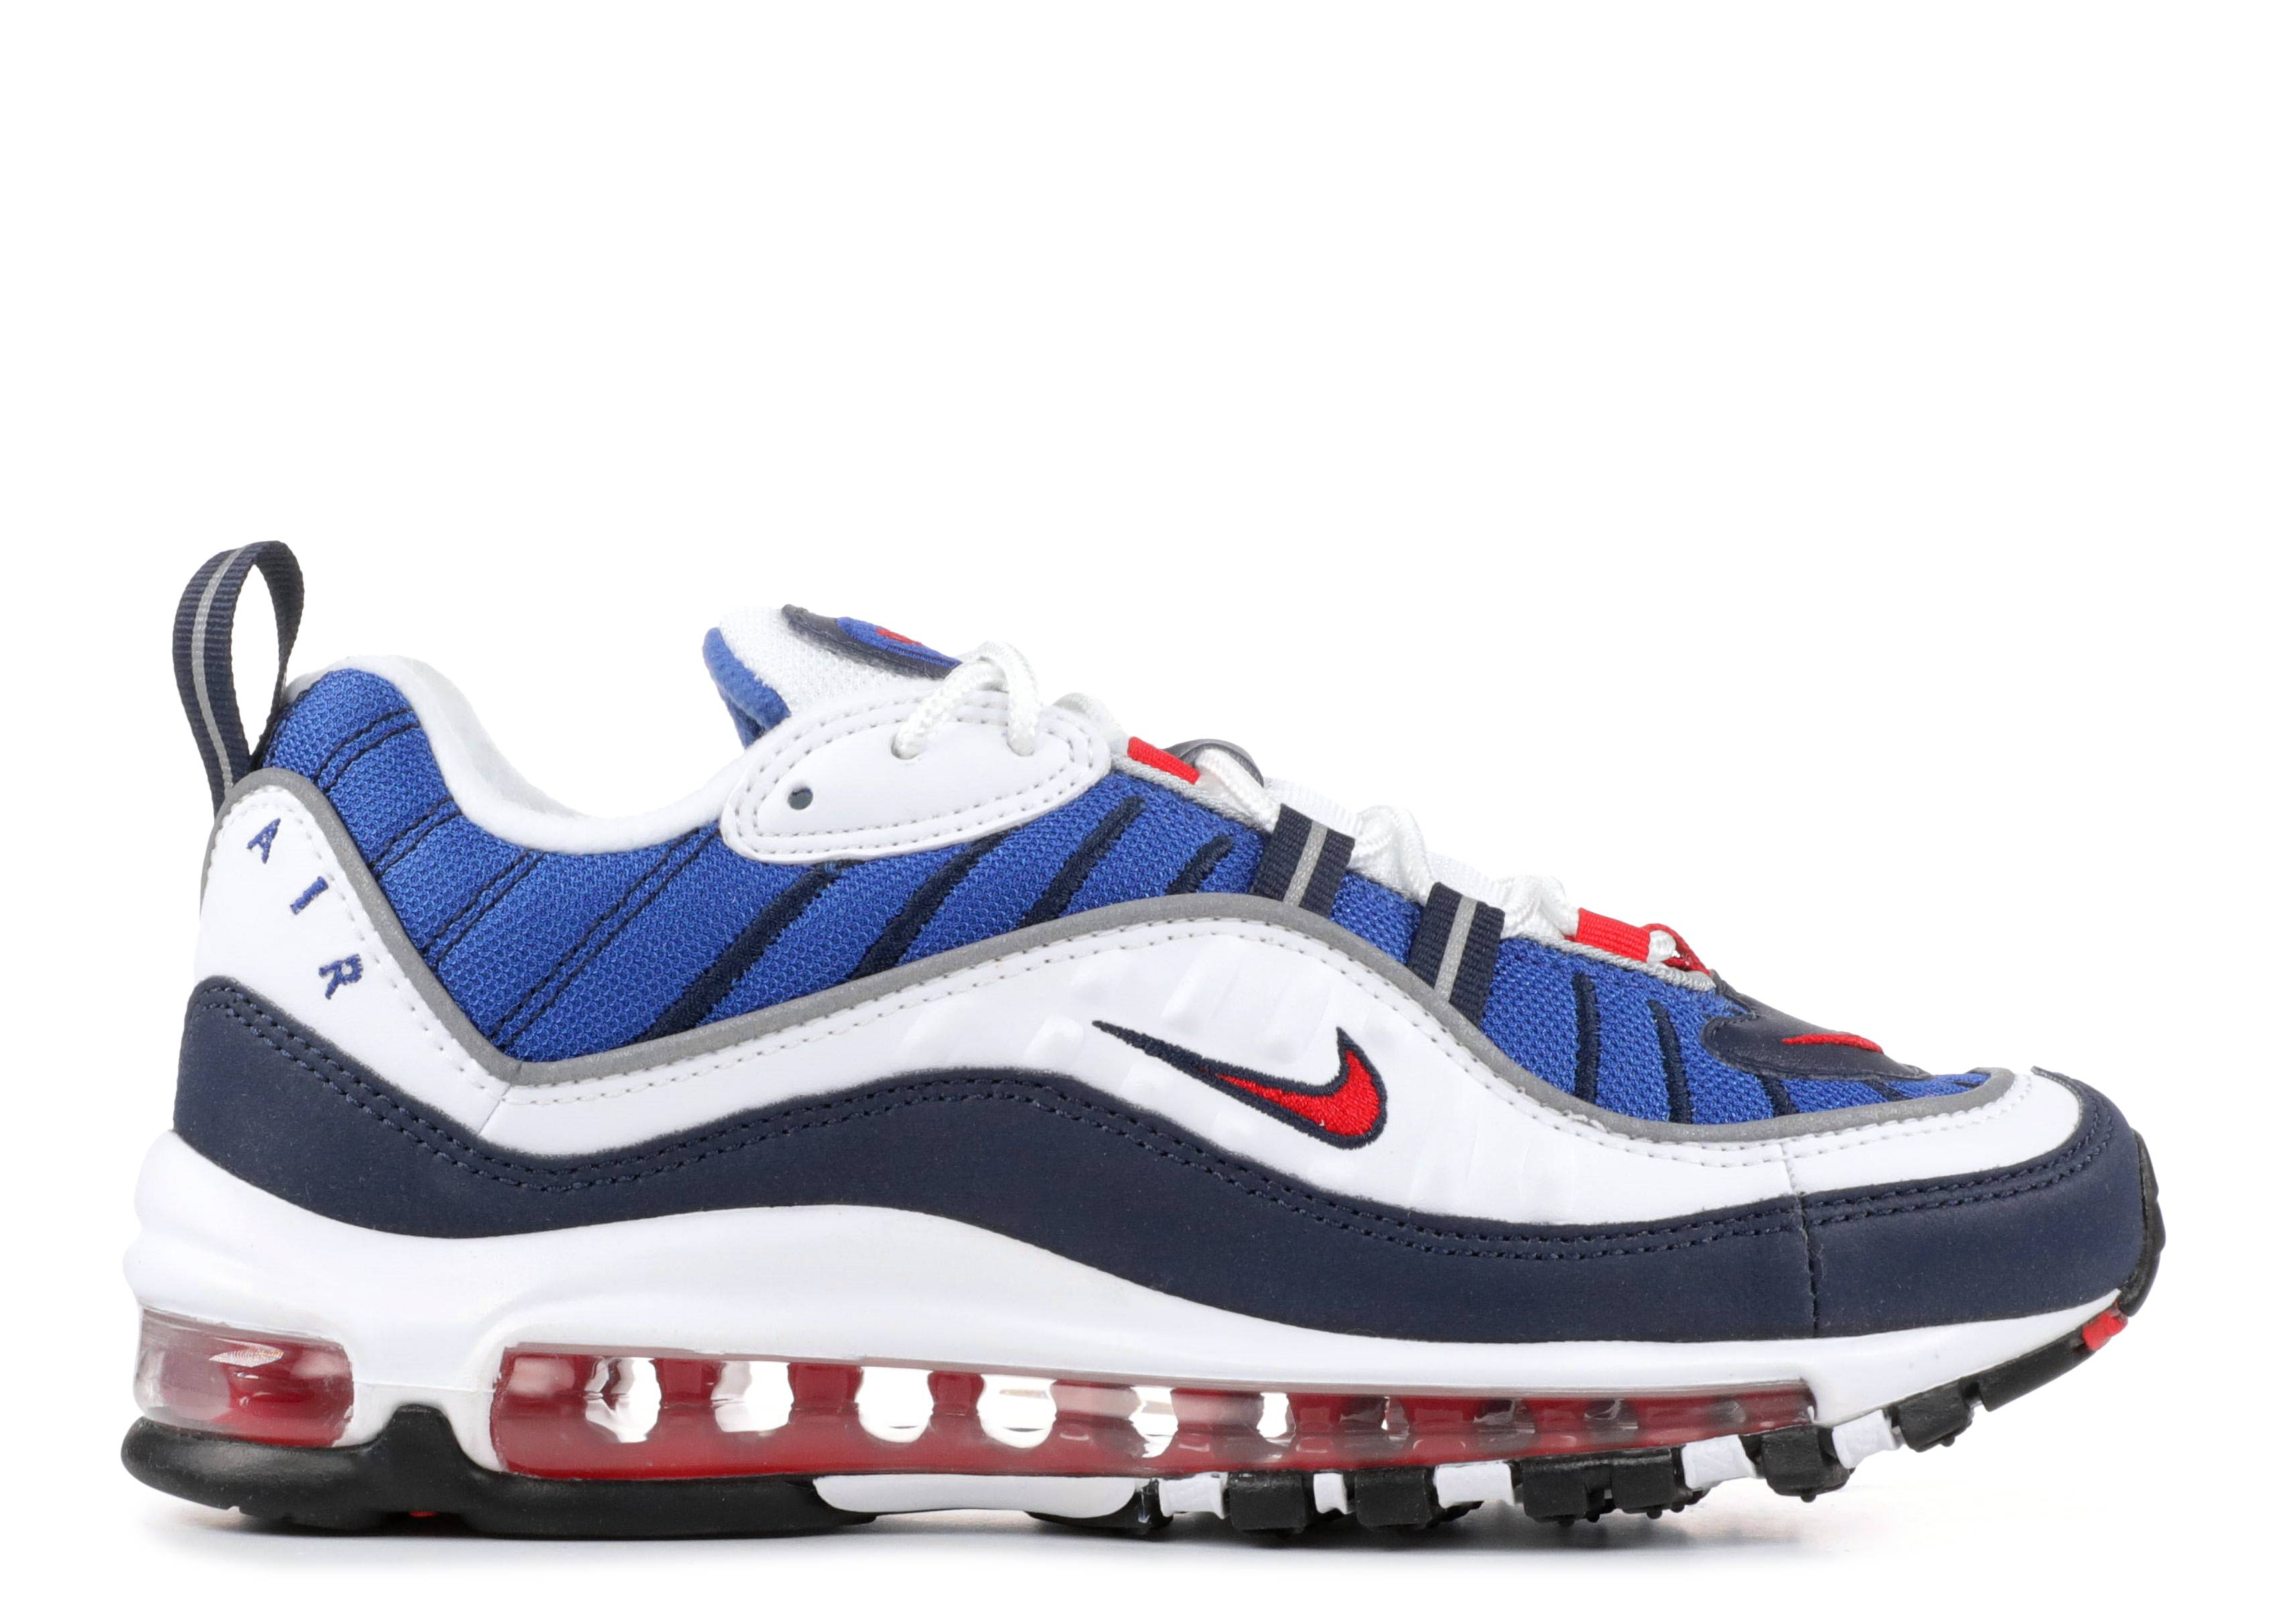 Nike Air Max 98 Détaillants Gundam Banque Nationale